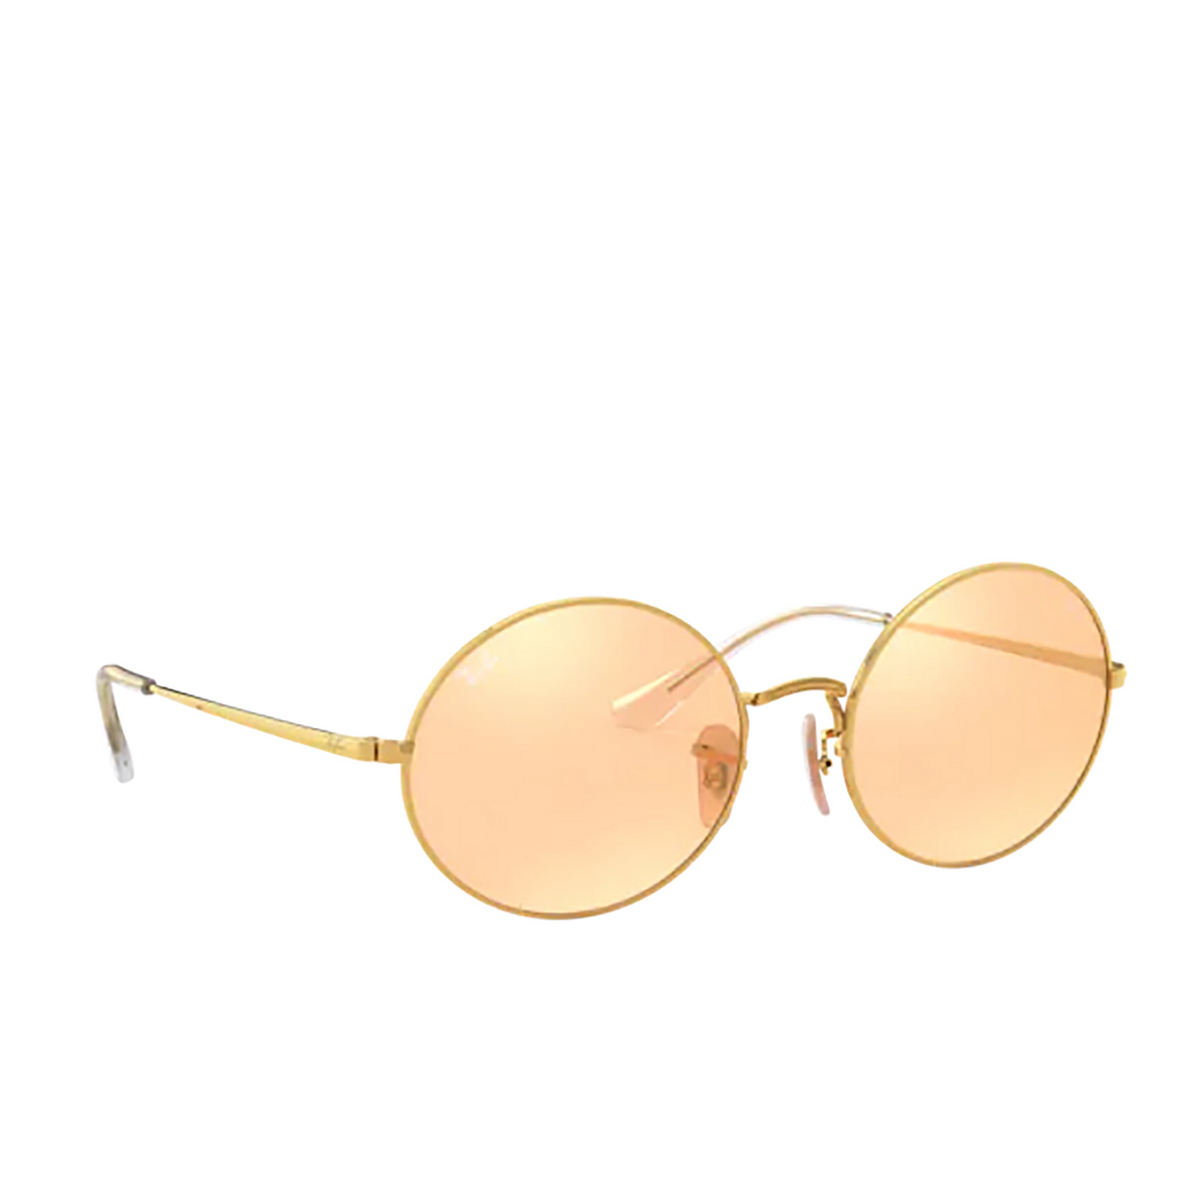 Ray-Ban® Oval Sunglasses: Oval RB1970 color Arista 001/B4 - three-quarters view.